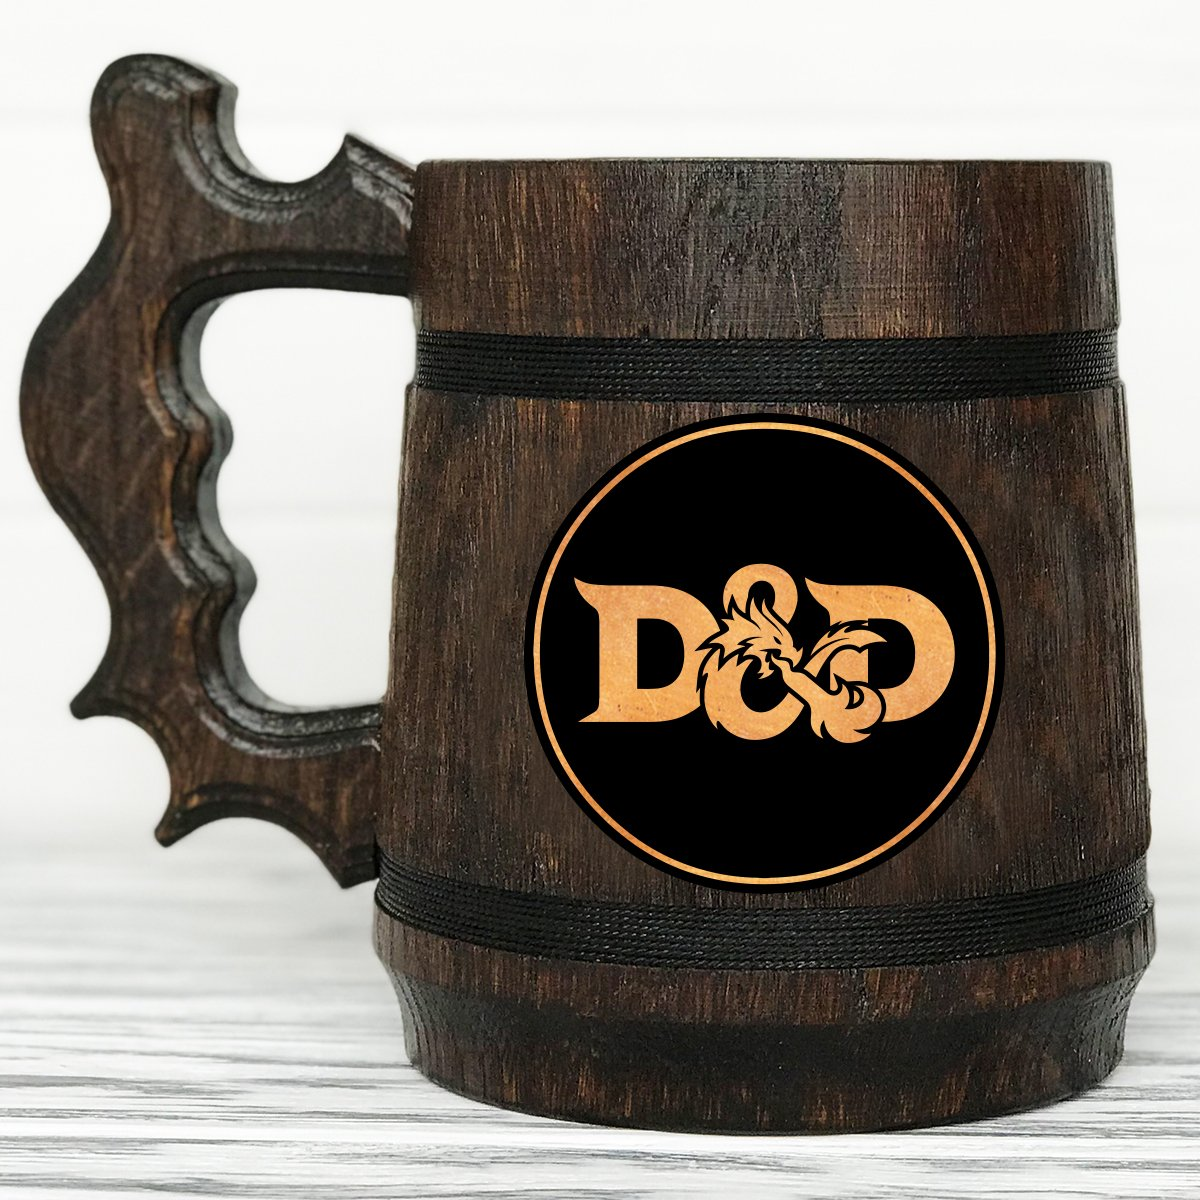 Dungeon and Dragons Mug. D& D Mug. Personalized Gamer Mug. Wood Stein Custom Beer Steins. Wooden Beer Mug. Personalized Gifts for Men #86/0.6L/22 Ounces